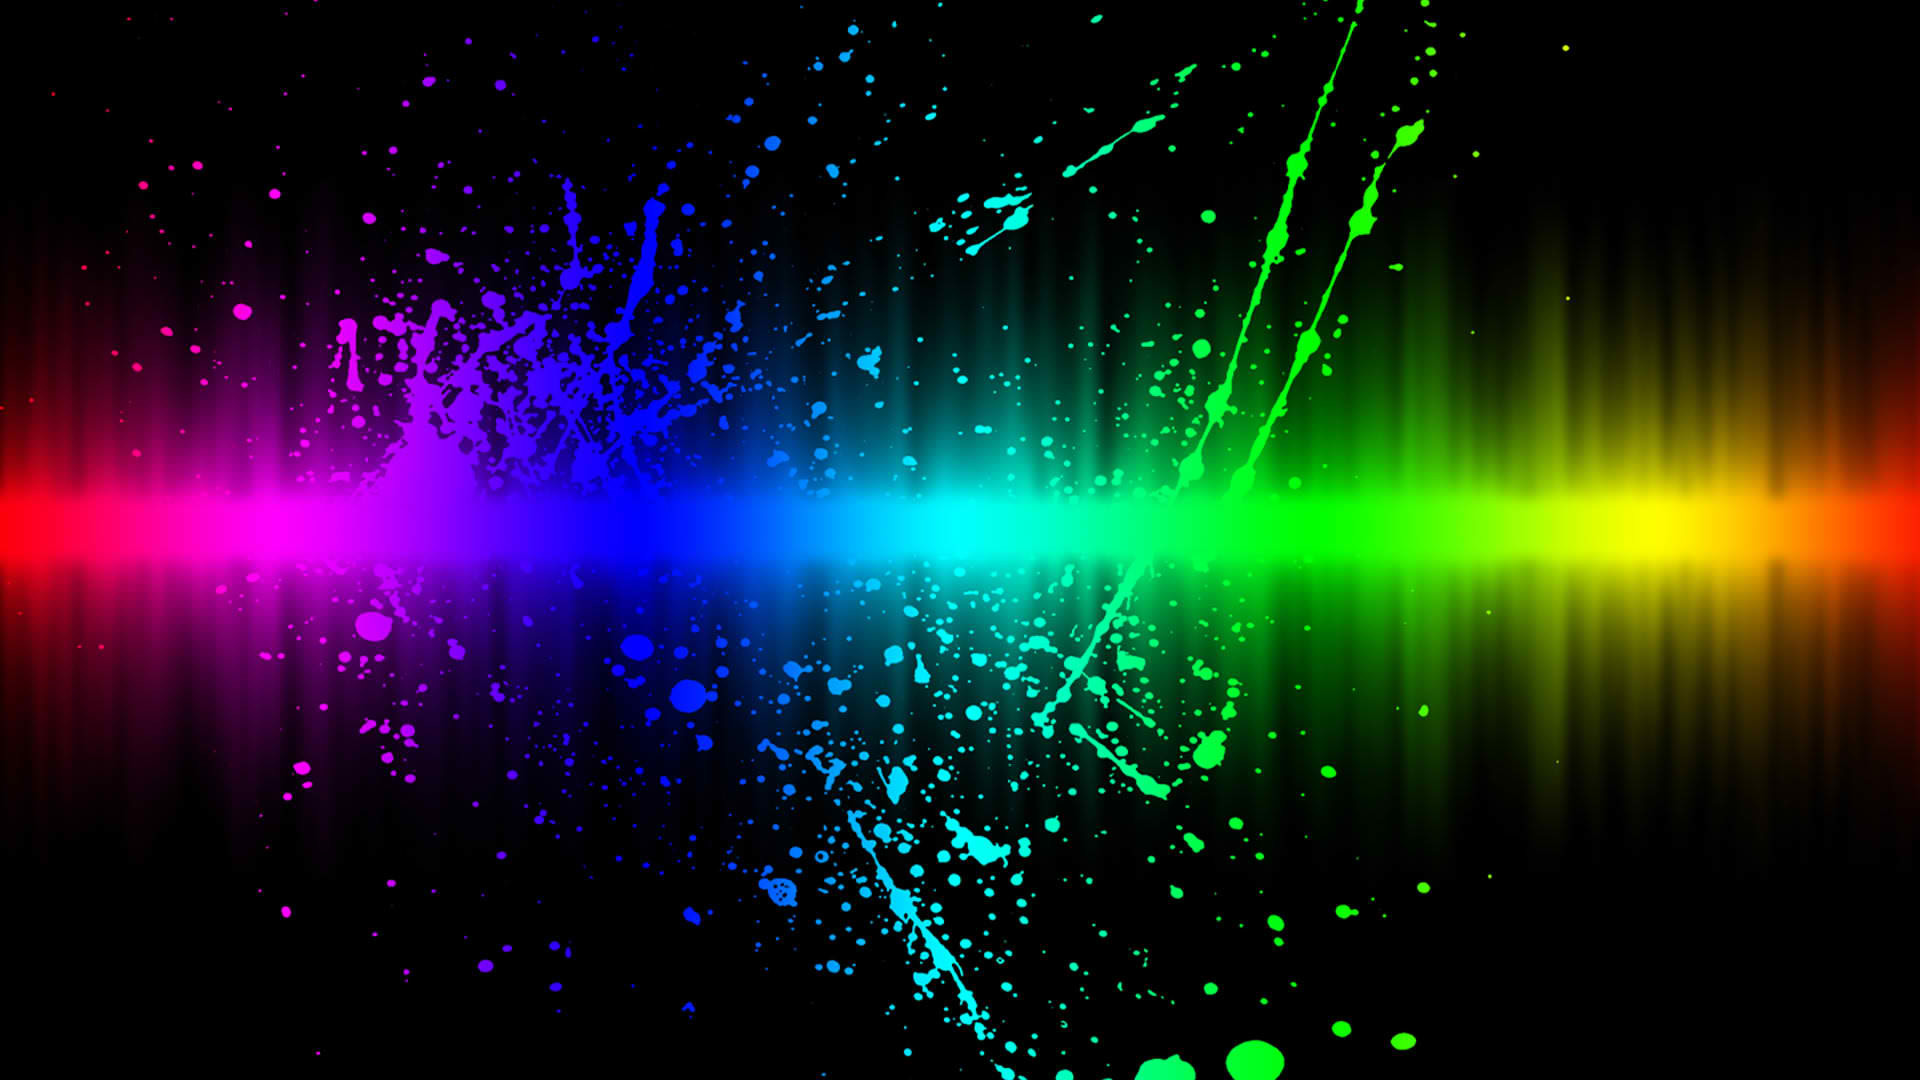 Cool-Colorful-Abstract-Art-Images-Wallpaper